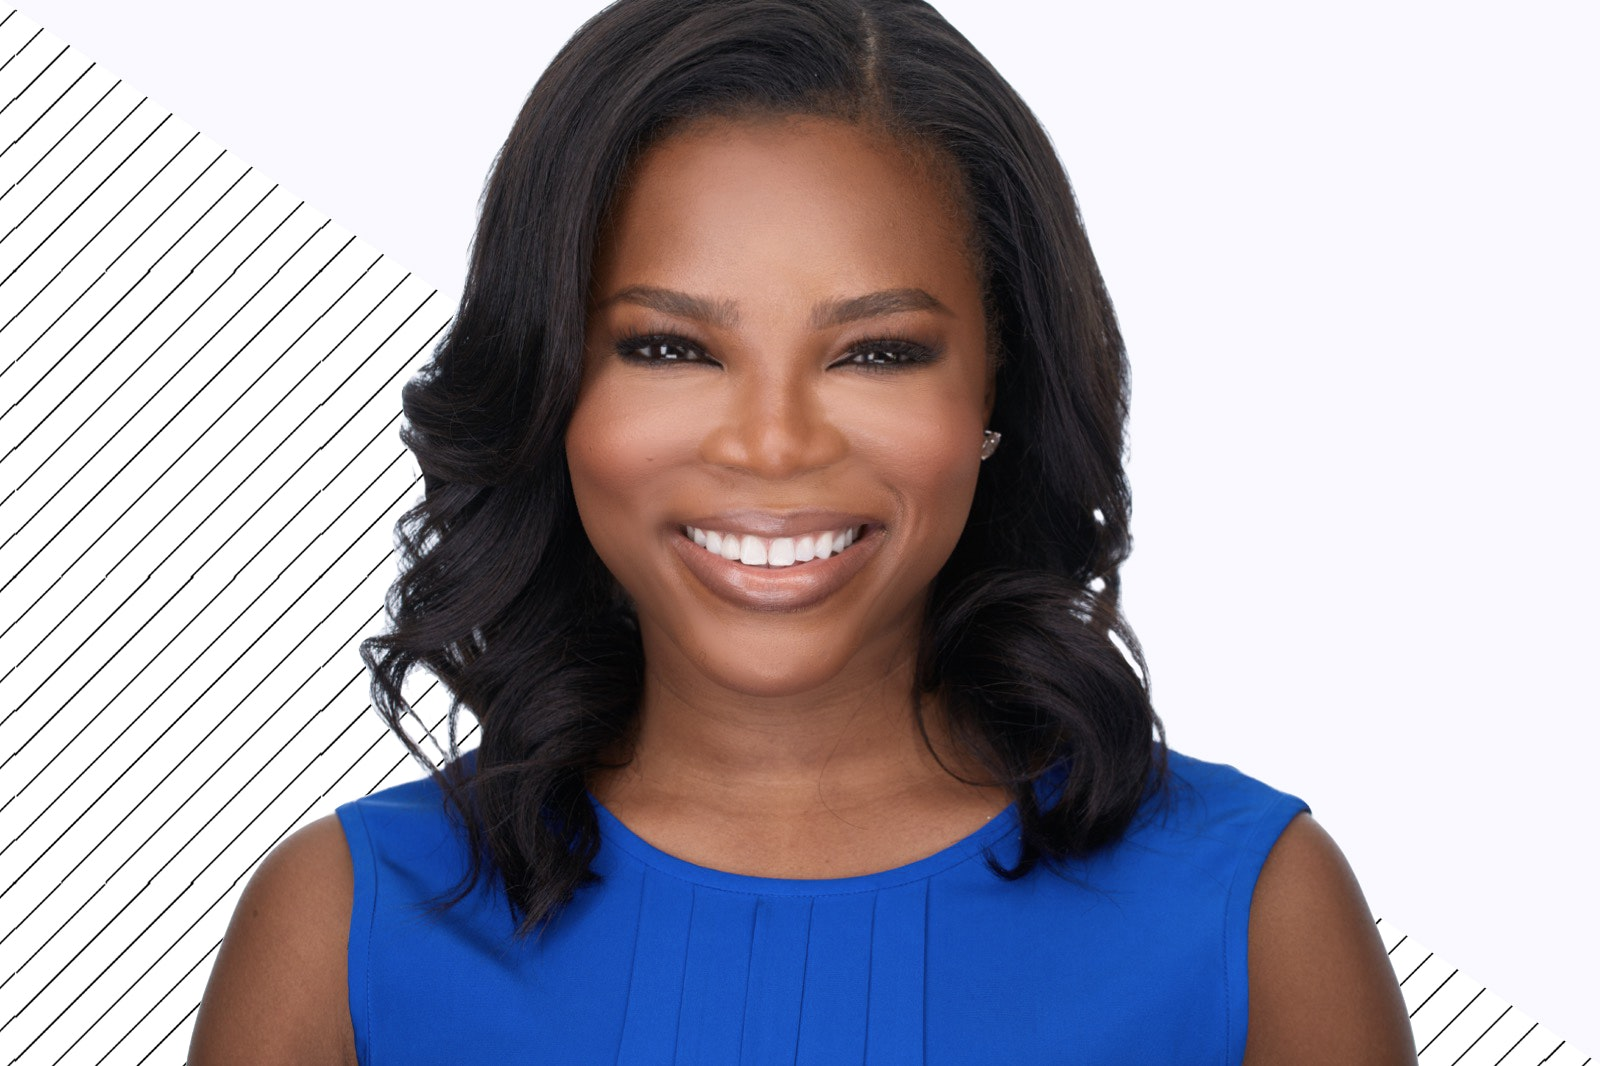 Dr. Michelle Henry Shares Her Go-To Skincare Products and Injectable Treatments